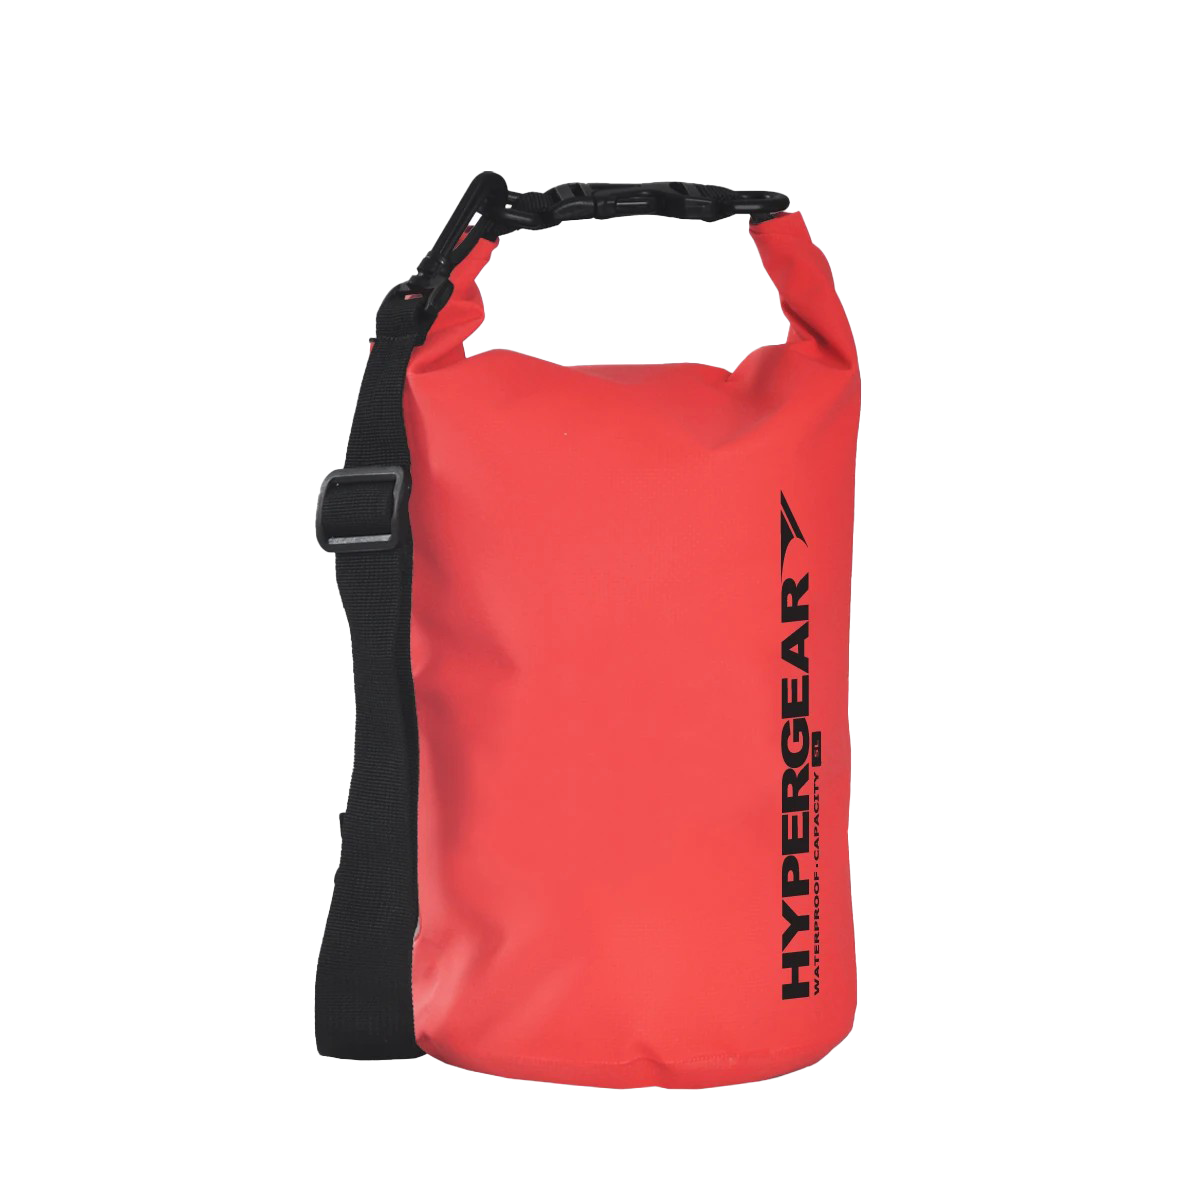 32 HYPERGEAR DRY BAG 5L RED.png